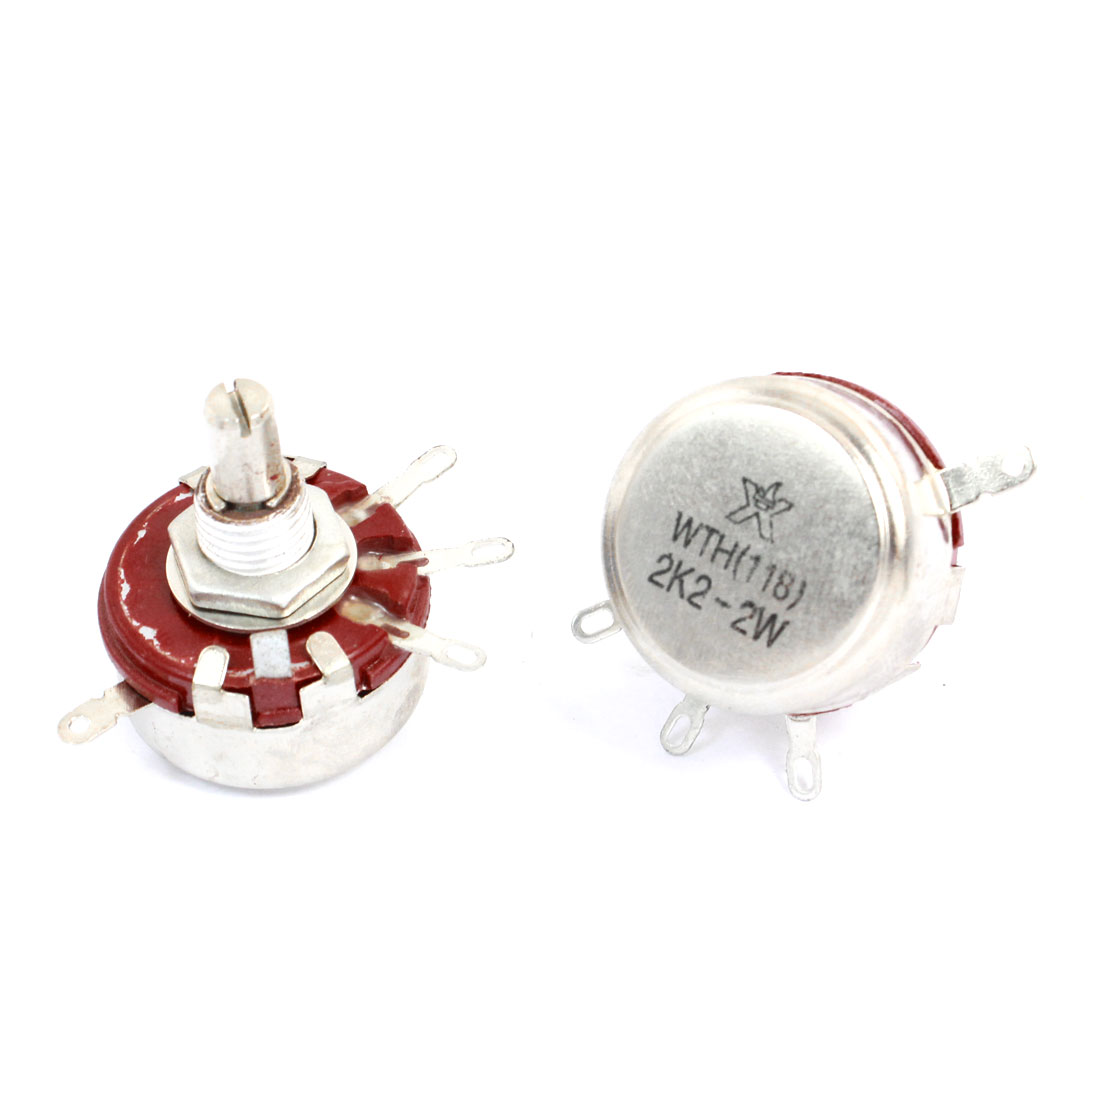 2 Pcs 2.2K ohm 2W Round Shaft 4 Terminal Rotary Carbon Potentiometer WTH118